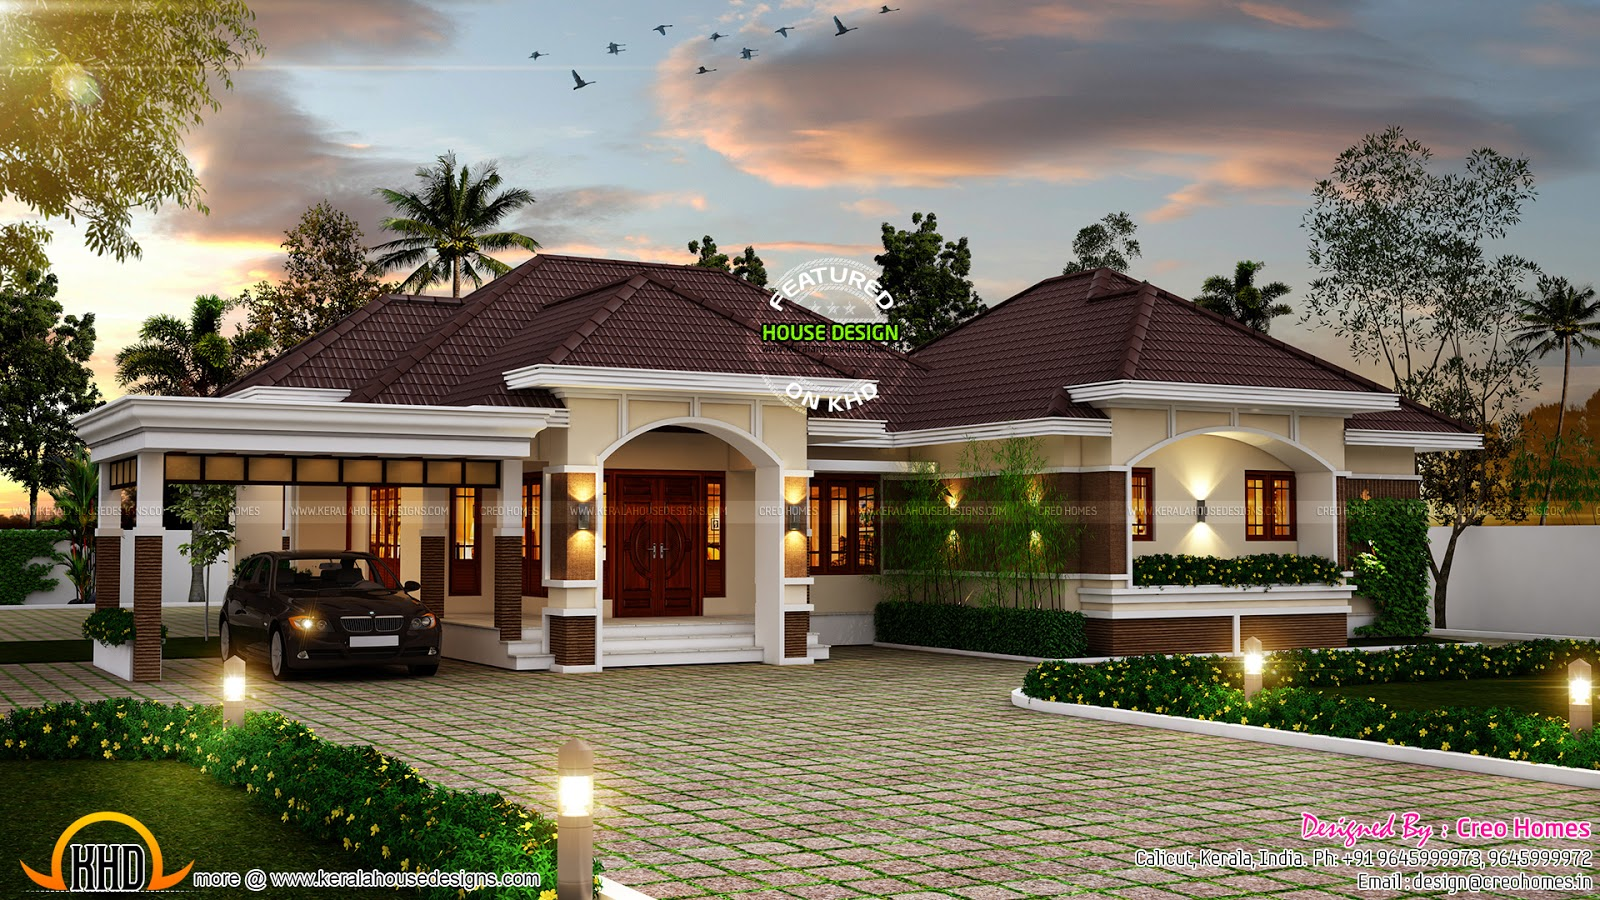 Outstanding bungalow in kerala kerala home design and for Small bungalow house plans in india